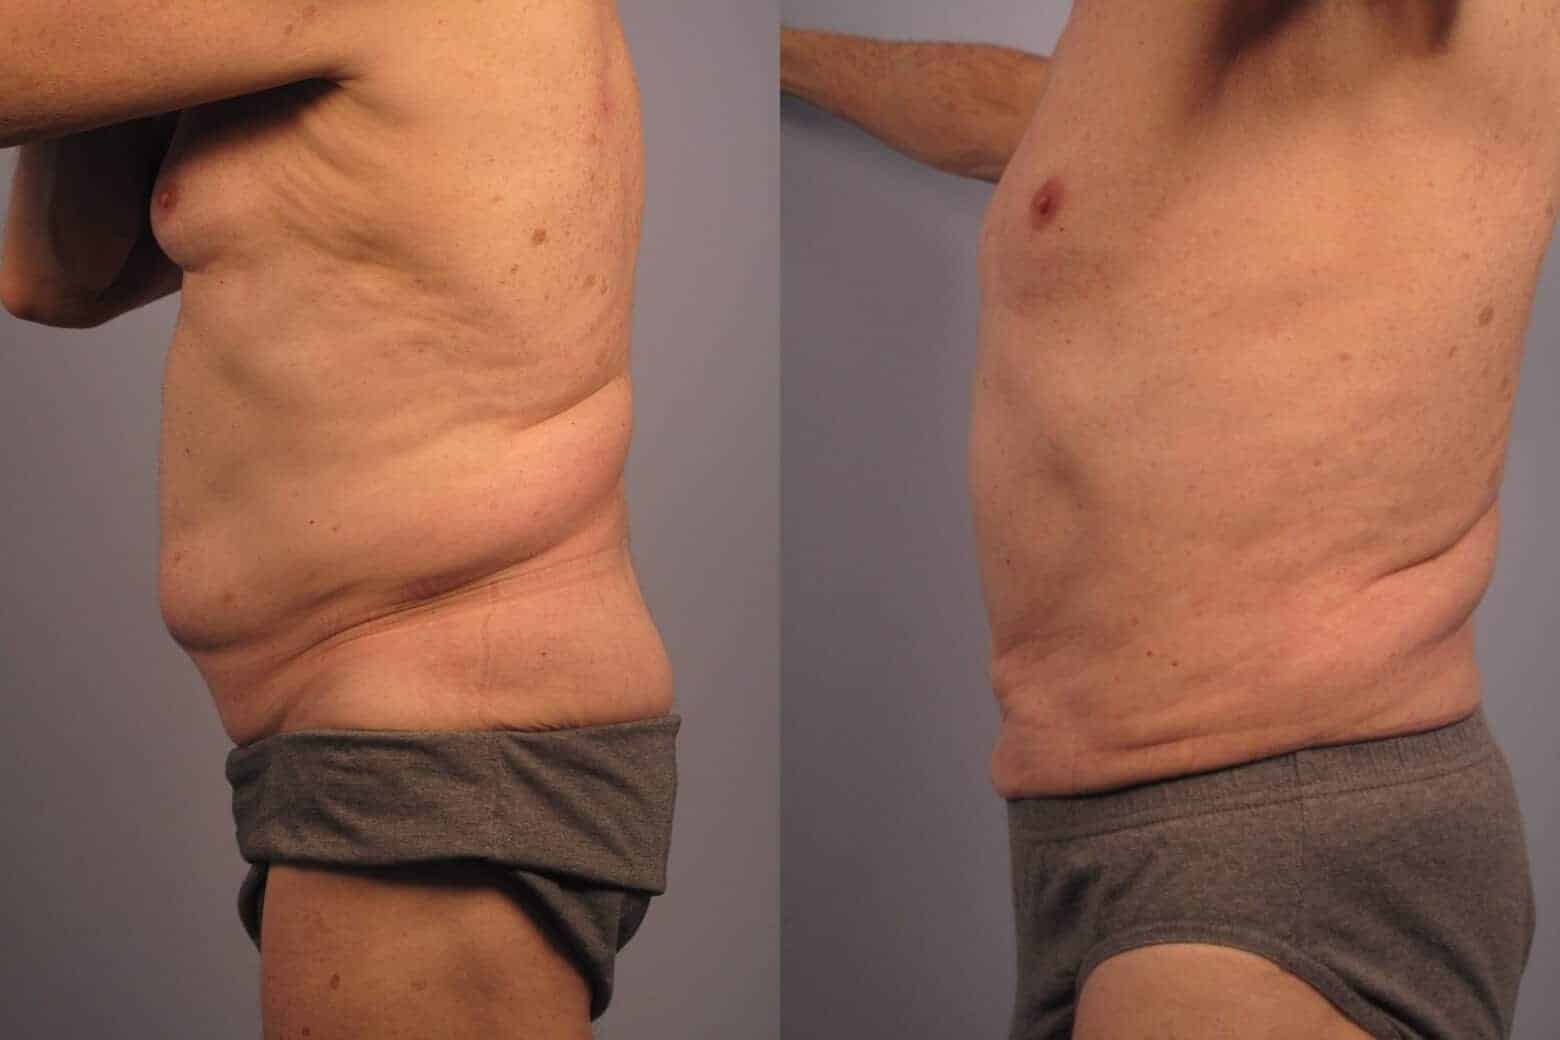 Male Tummy Tuck - Before and After Gallery - Patient Photo 18